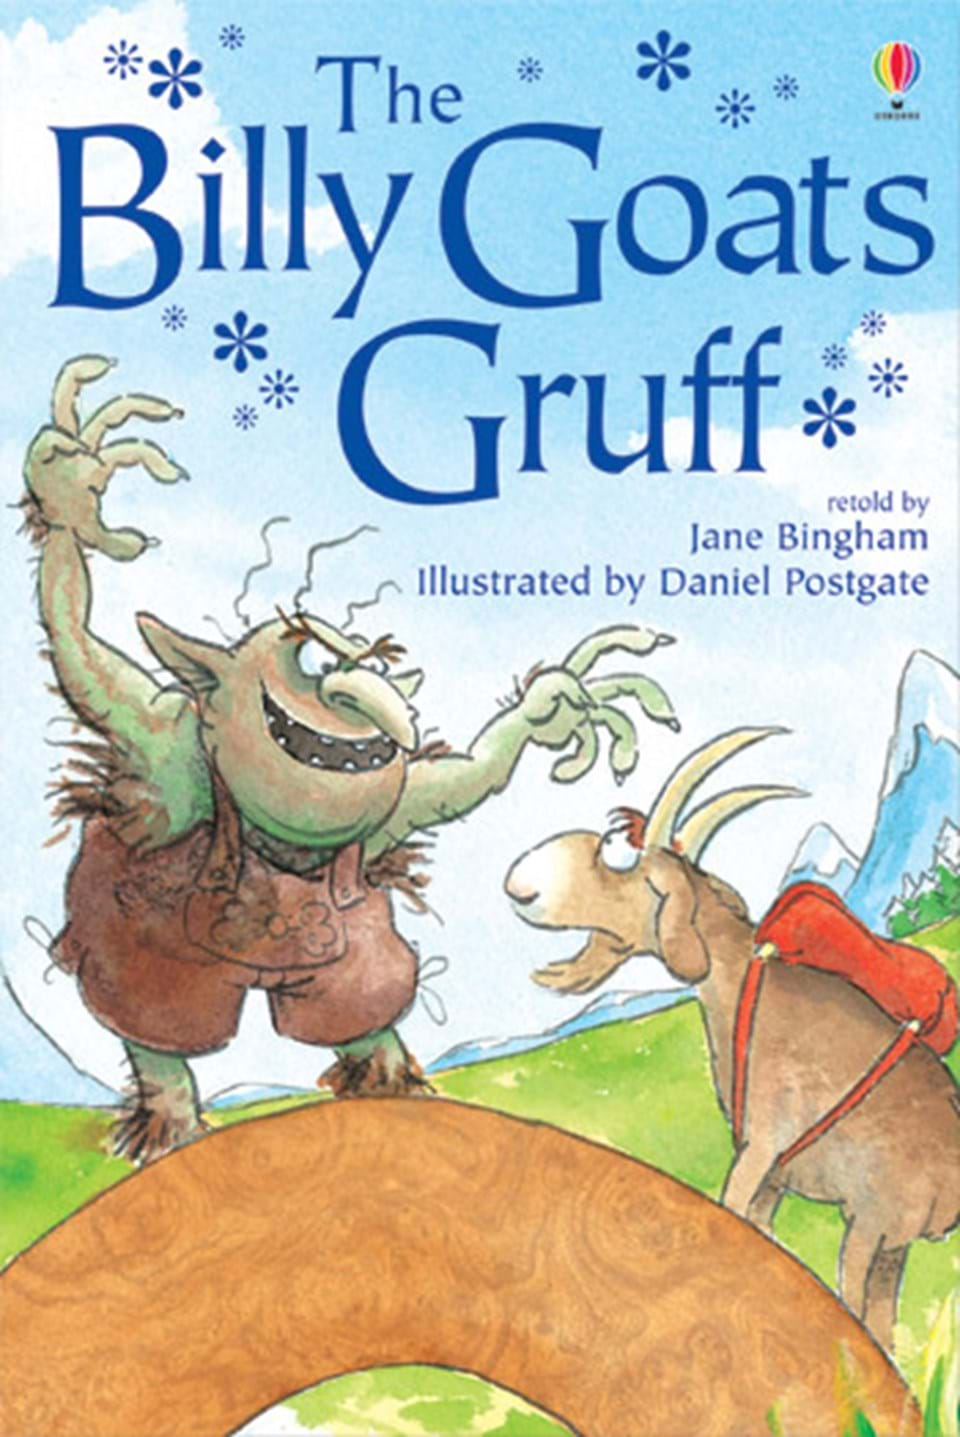 Worksheet Billy Goat Gruff the billy goats at usborne books home gruff